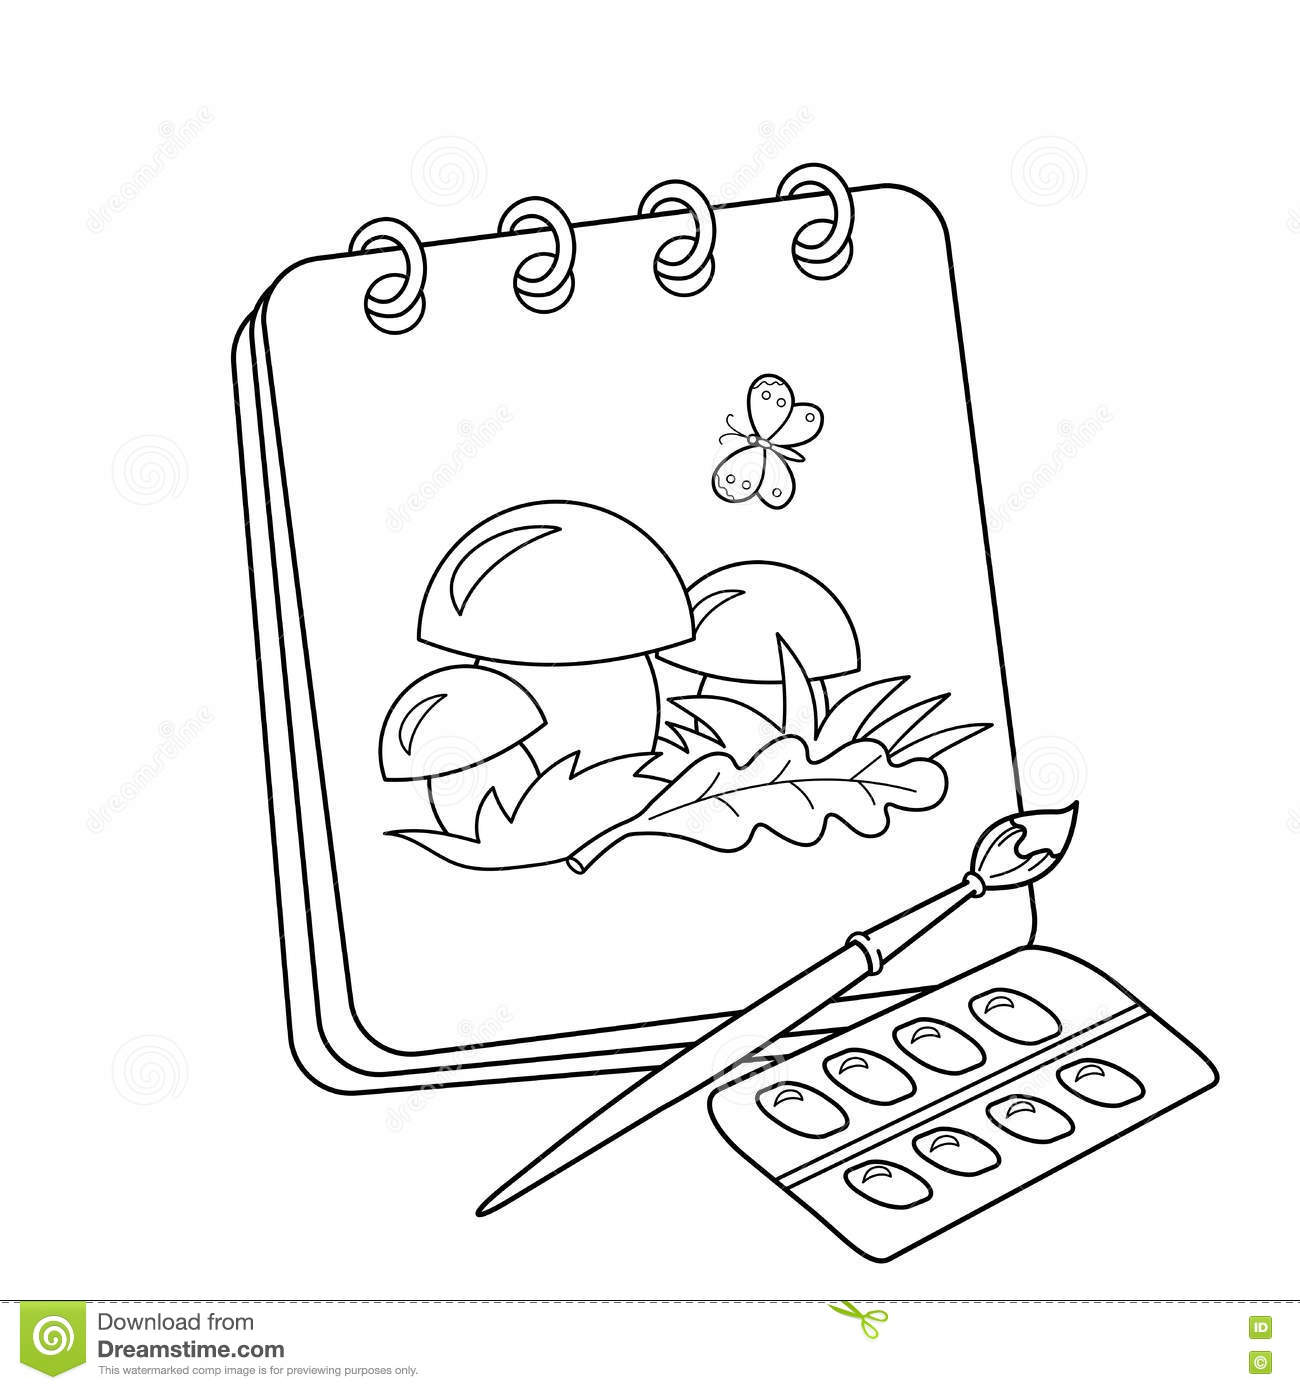 Coloring page outline of cartoon album or sketchbook with brush and paints drawing of mushrooms coloring book for kids